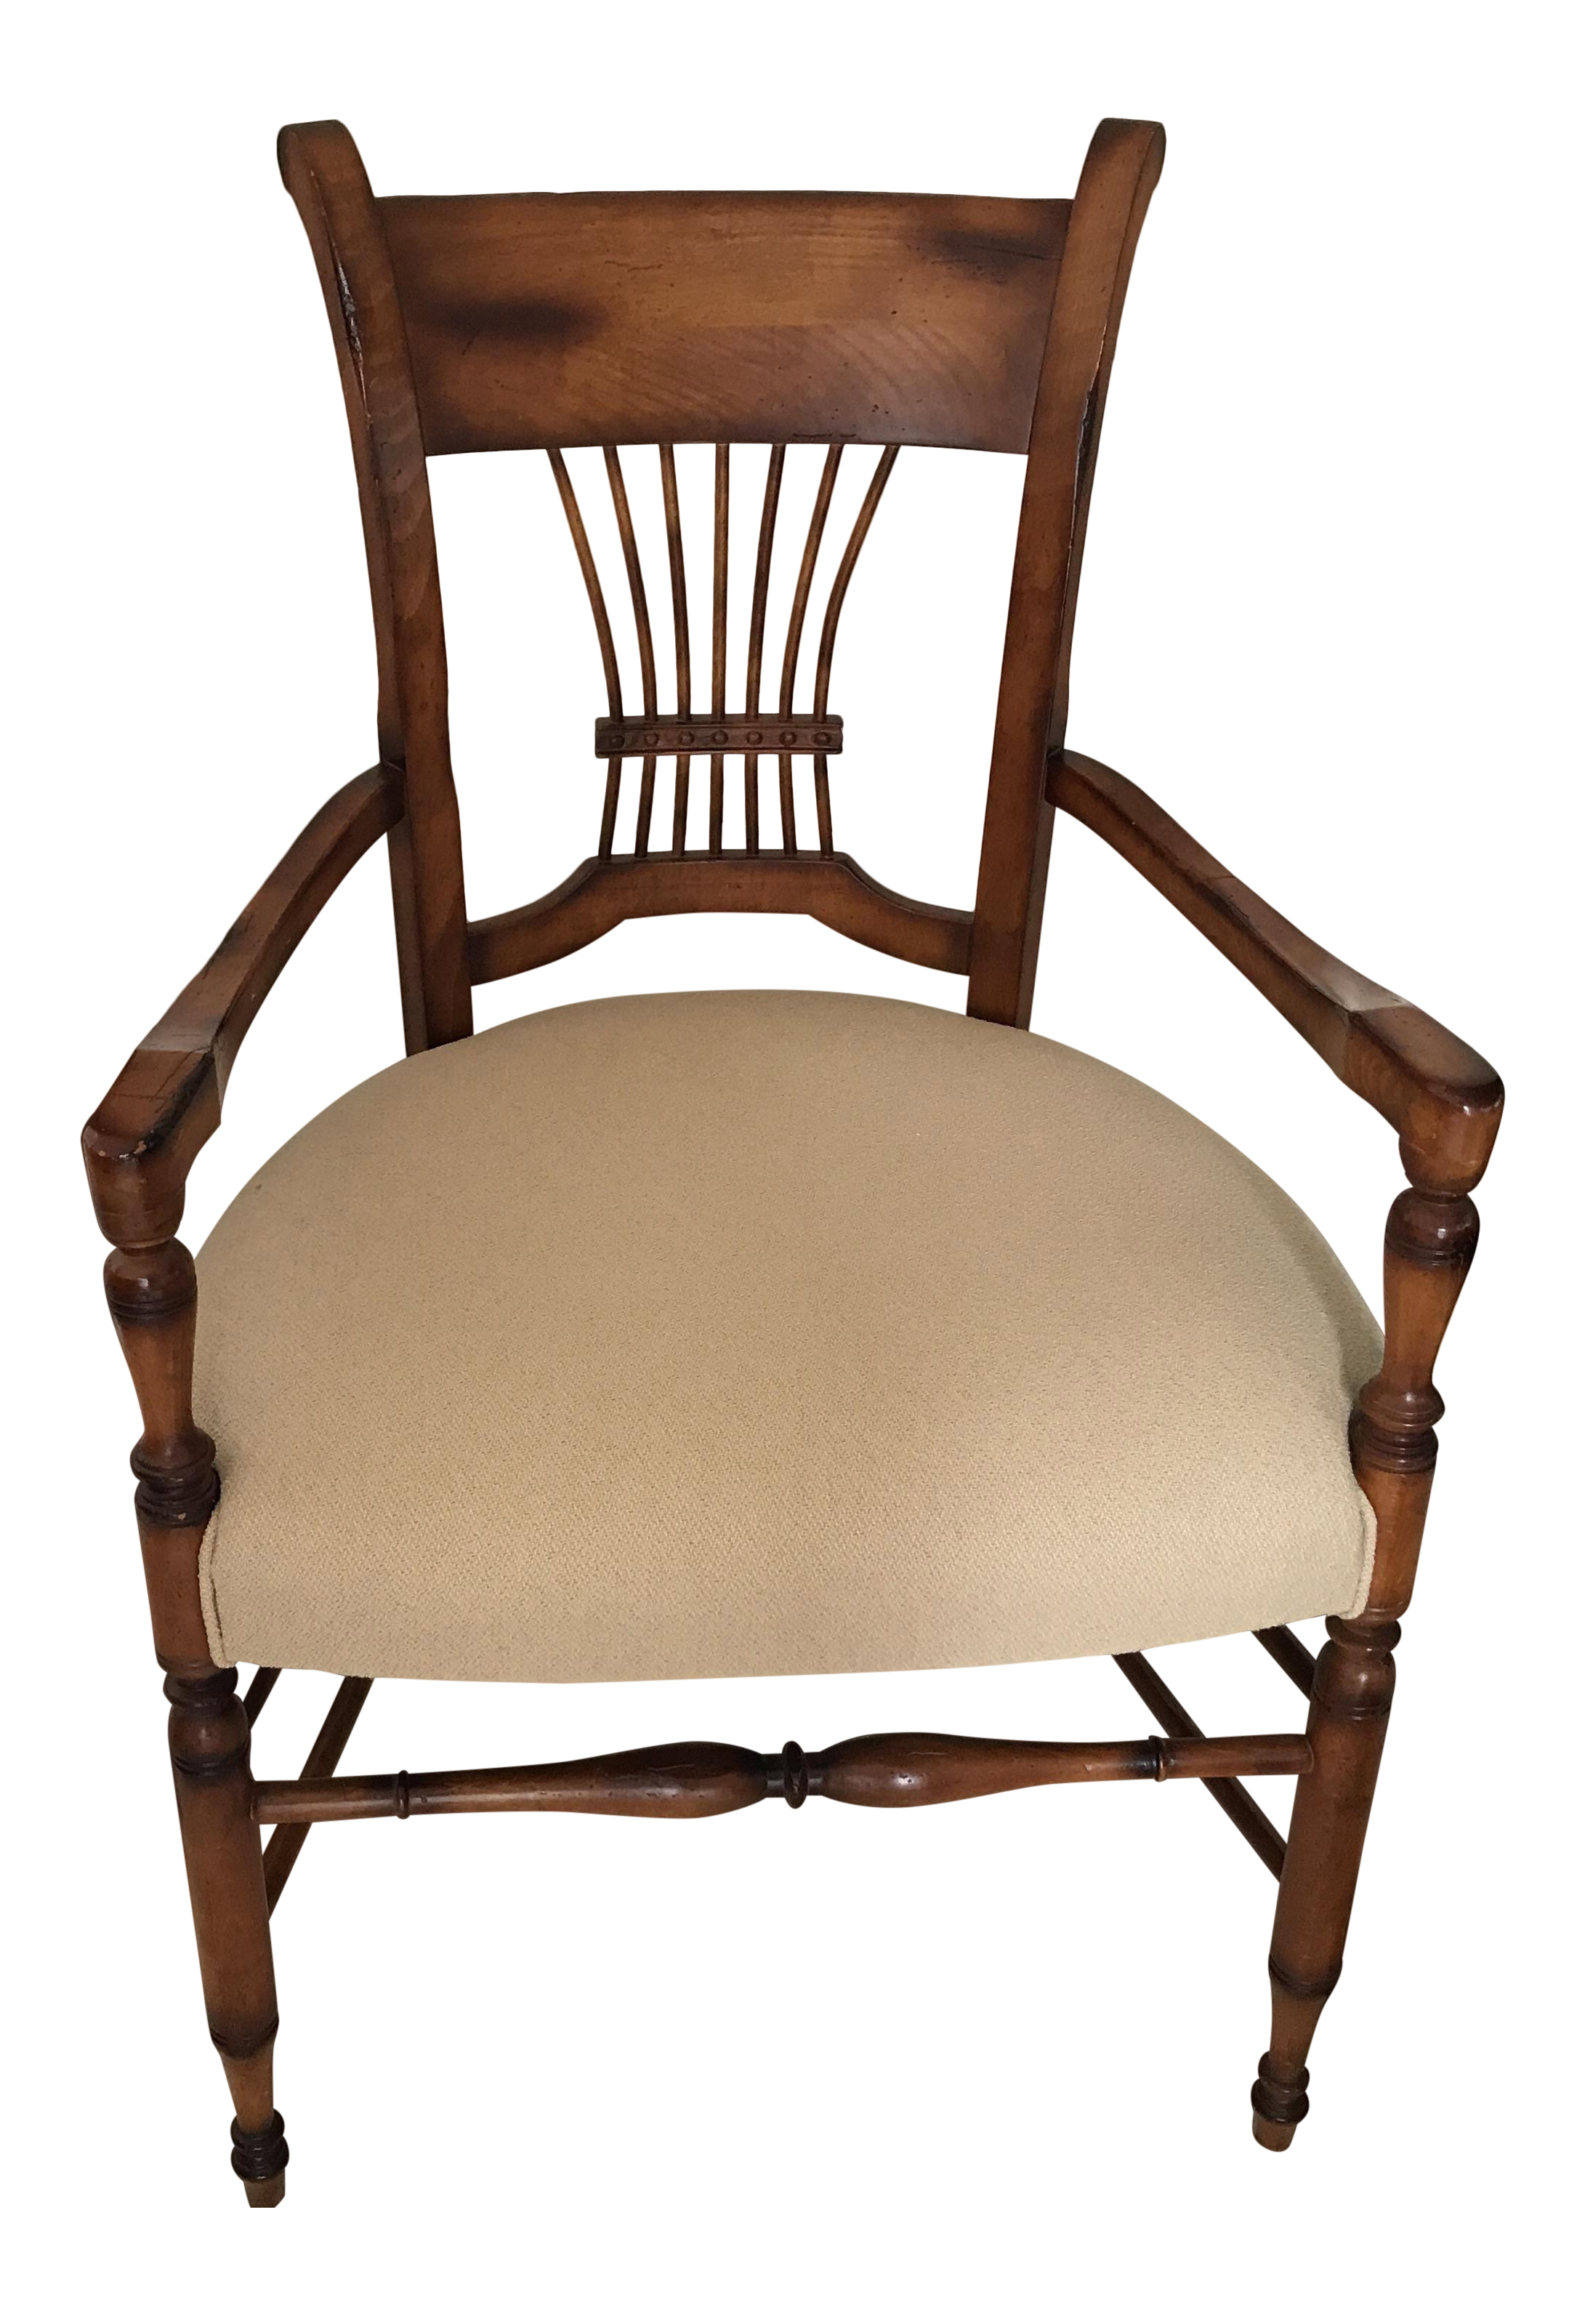 Superieur Baker Milling Road Spindle Chair   Image 1 Of 7